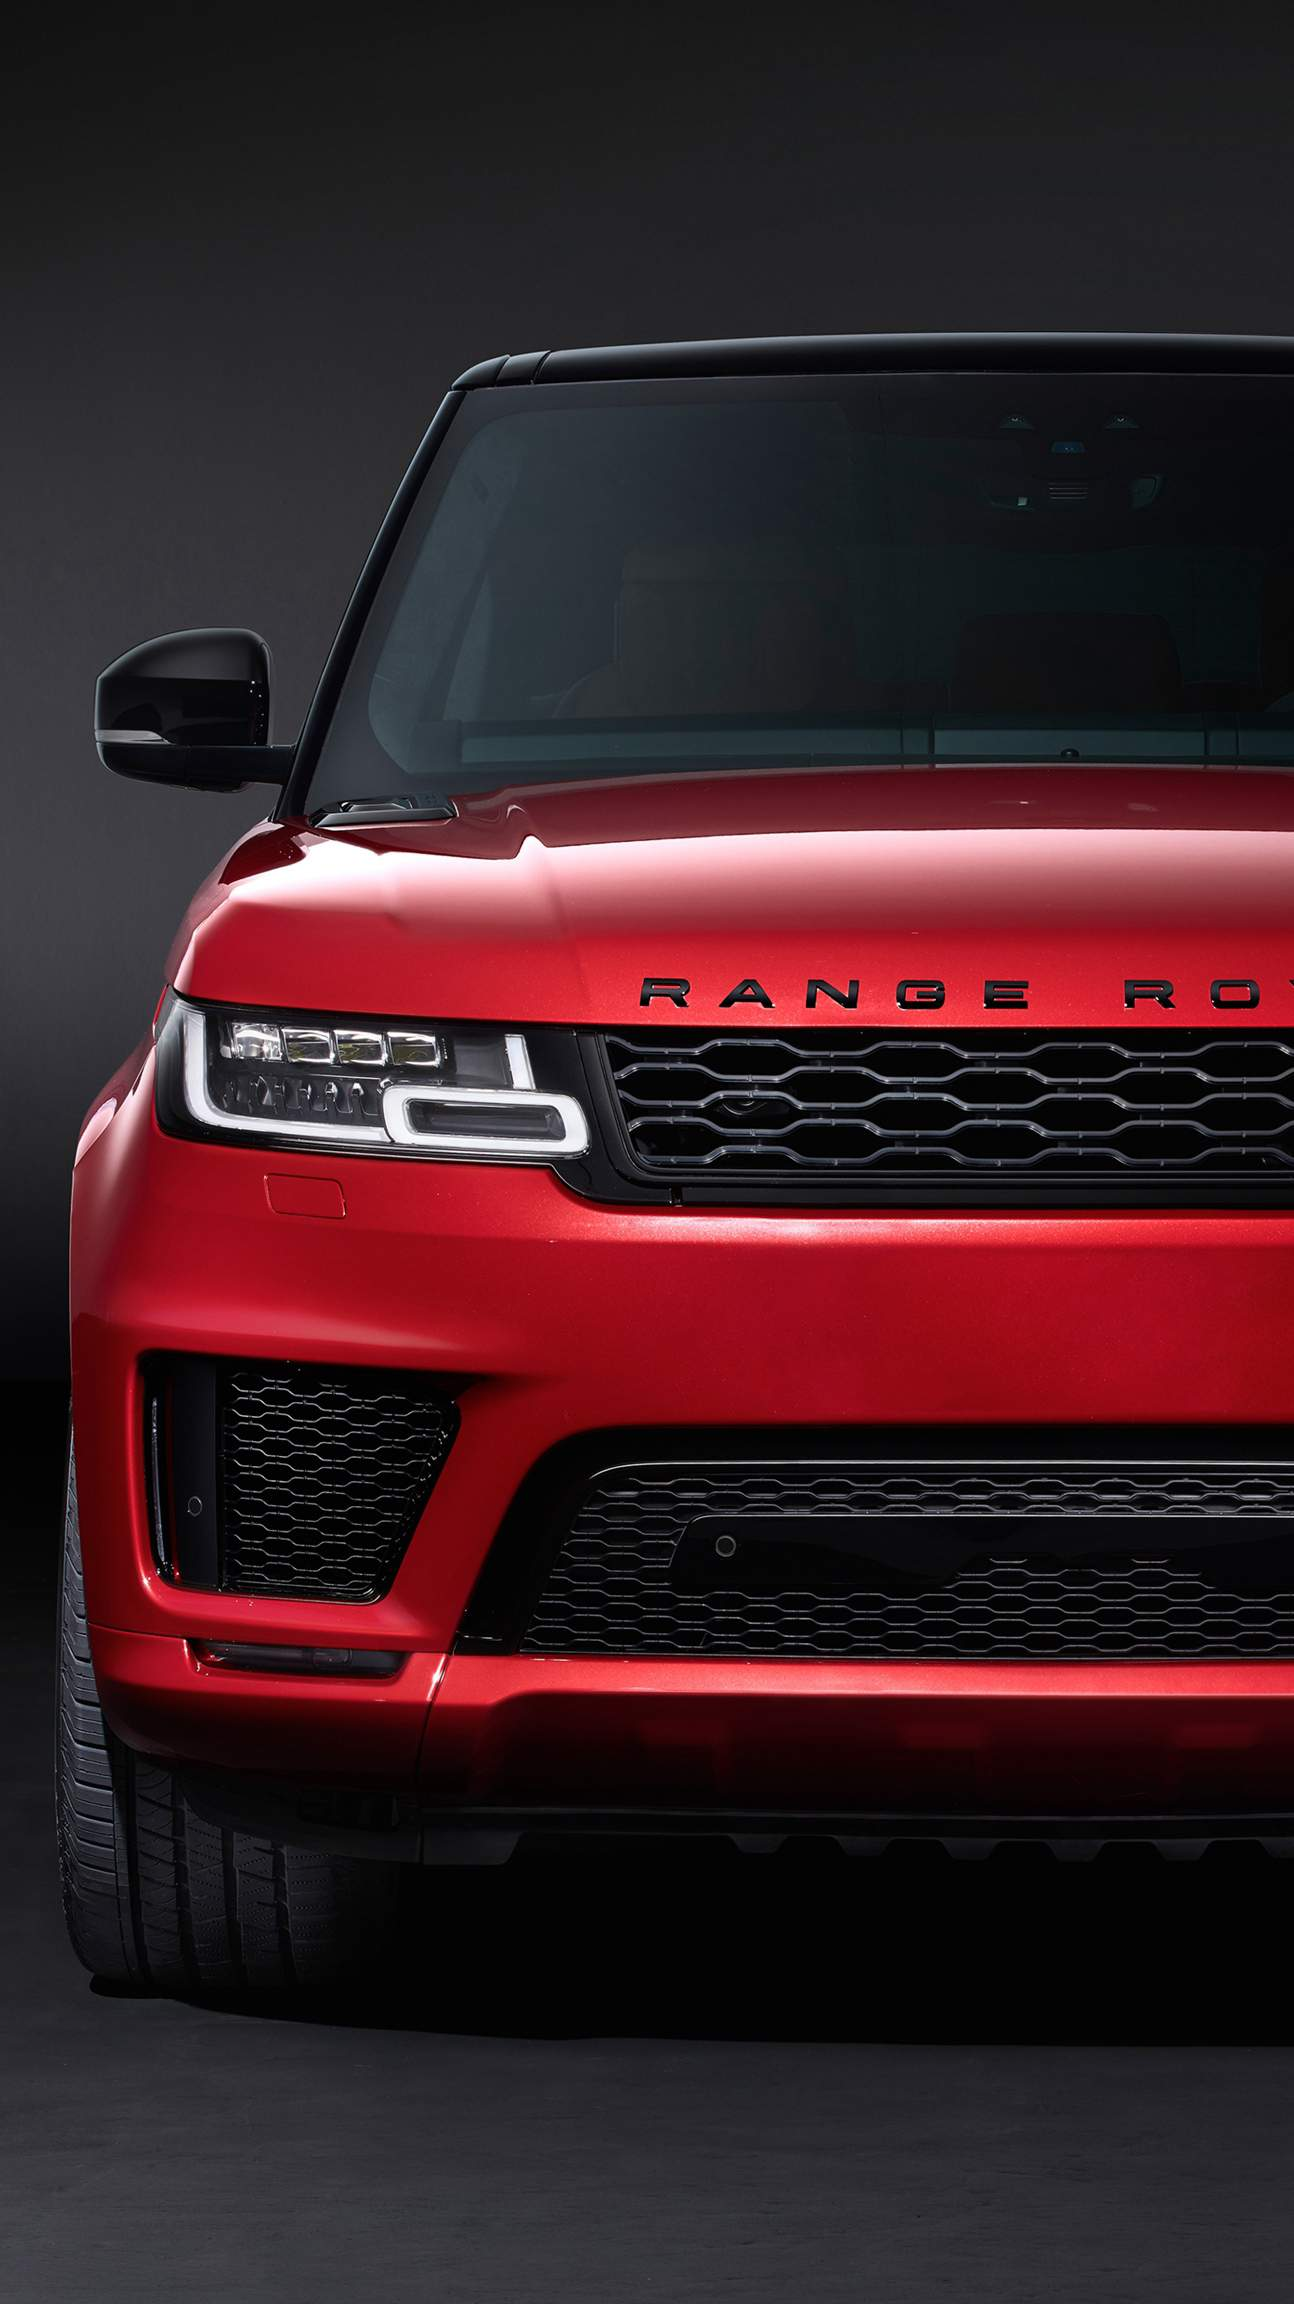 Wallpaper Quotes On Life For Desktop Red Range Rover Sport Autobiography Iphone Wallpaper